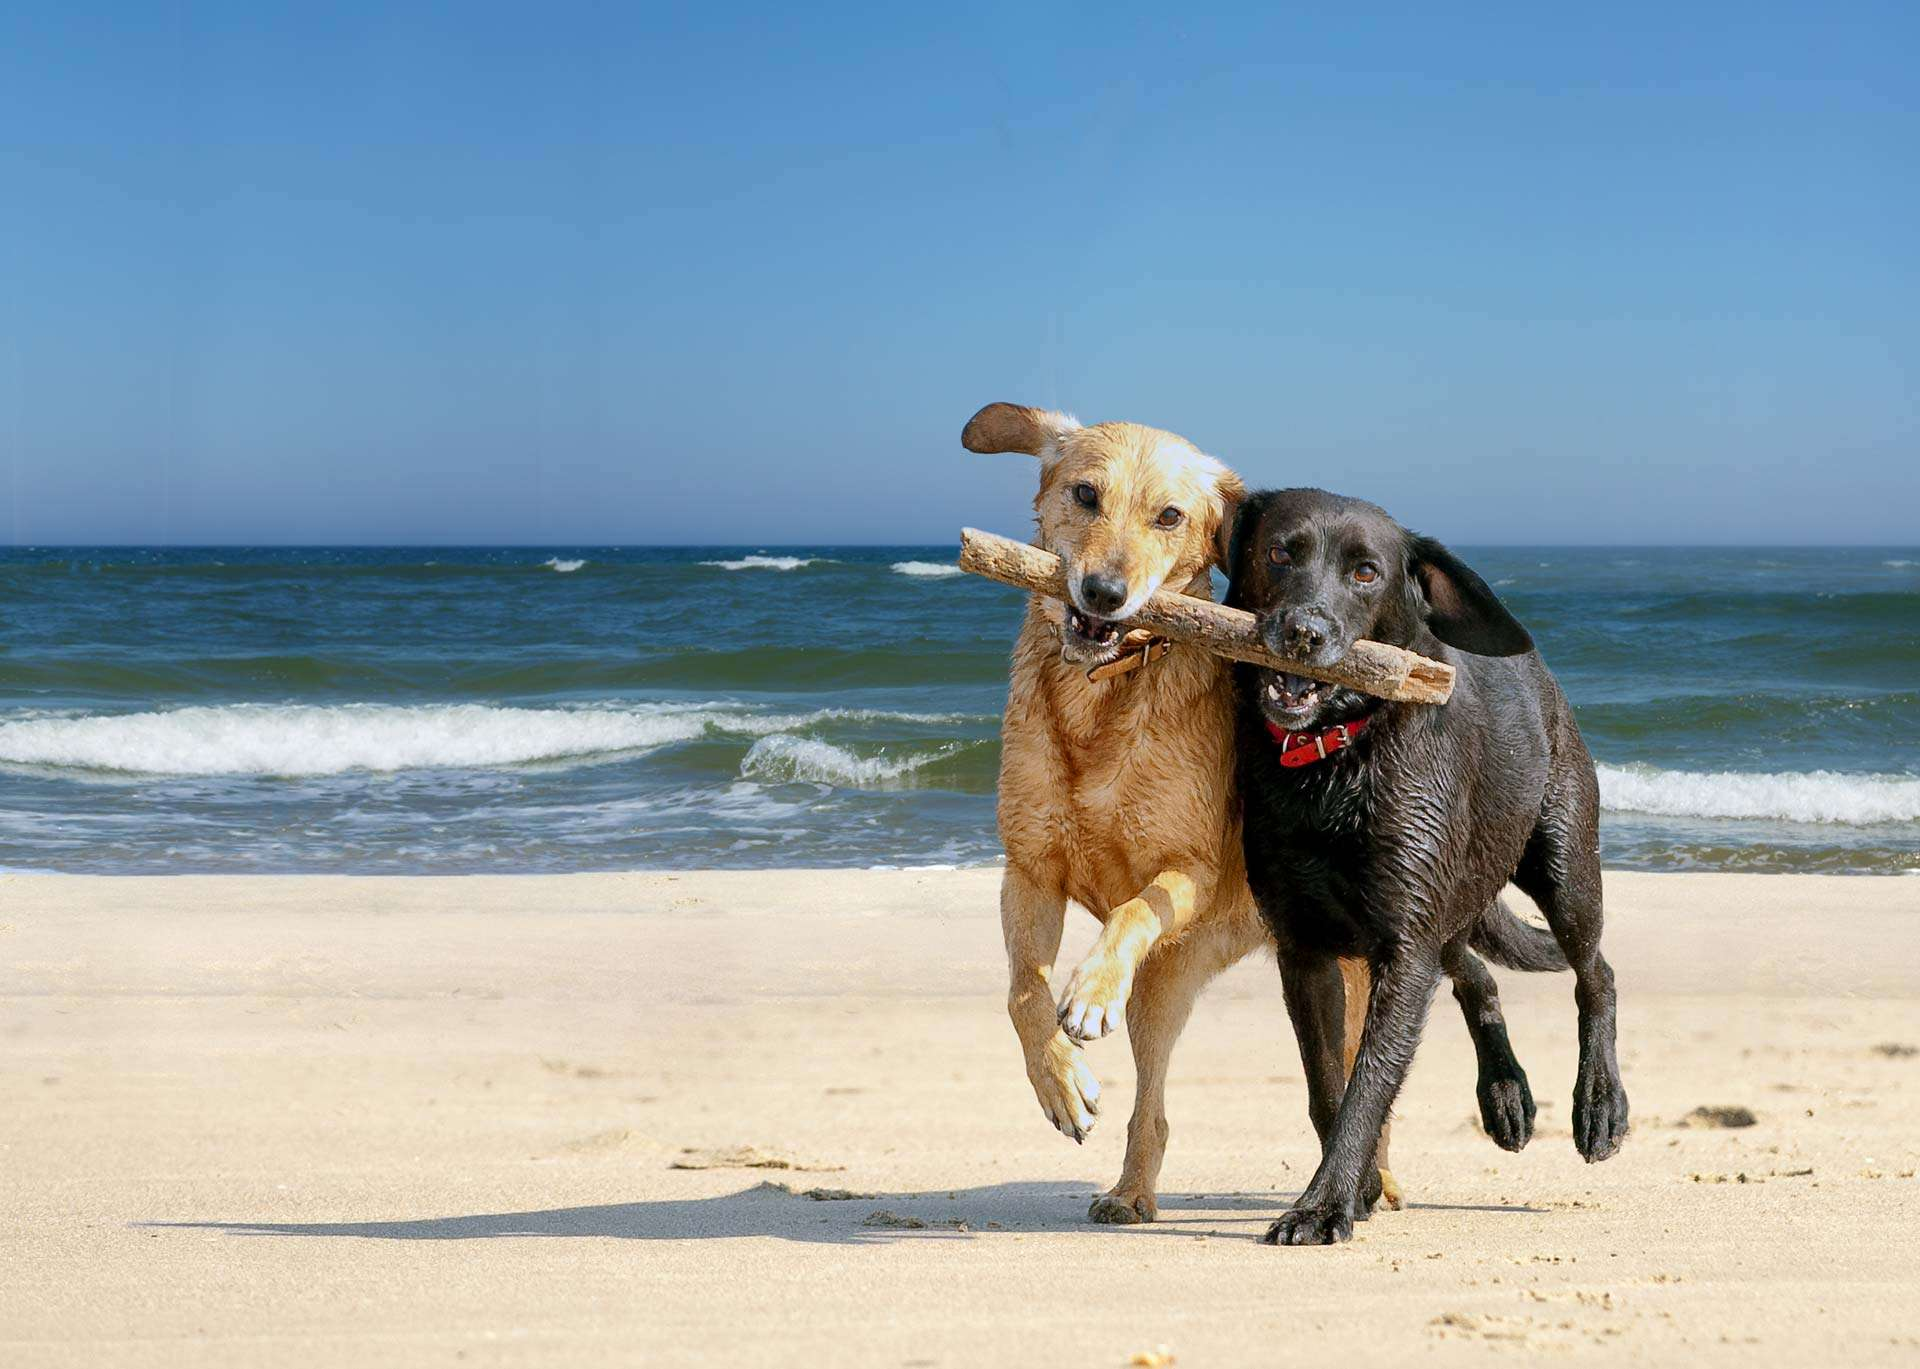 Santa Cruz Has Some Of The Most Beautiful Beaches And Scenic Parks In California However It Can Be Difficult To Find One That Allows Your Furry Friend